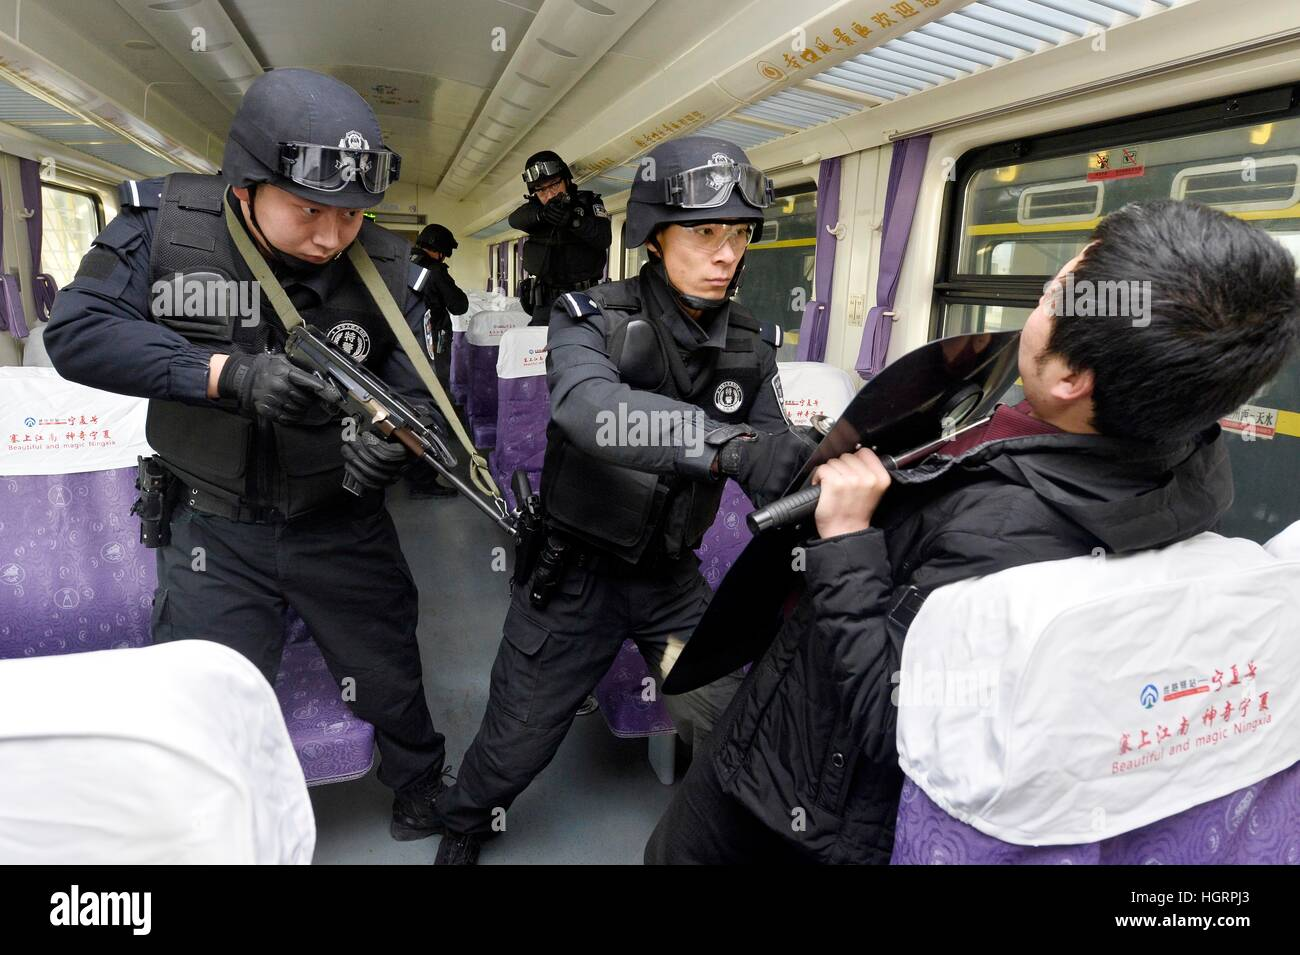 Beijing, China's Ningxia Hui Autonomous Region. 12th Jan, 2017. SWAT policement take part in an anti-riot exercise in a rail yard of the Yinchuan department of Lanzhou Railway Bureau in Yinchuan, capital of northwest China's Ningxia Hui Autonomous Region, Jan. 12, 2017. The exercise was held to improve security capacity for the upcoming Spring Festival travel rush. © Peng Zhaozhi/Xinhua/Alamy Live News Stock Photo